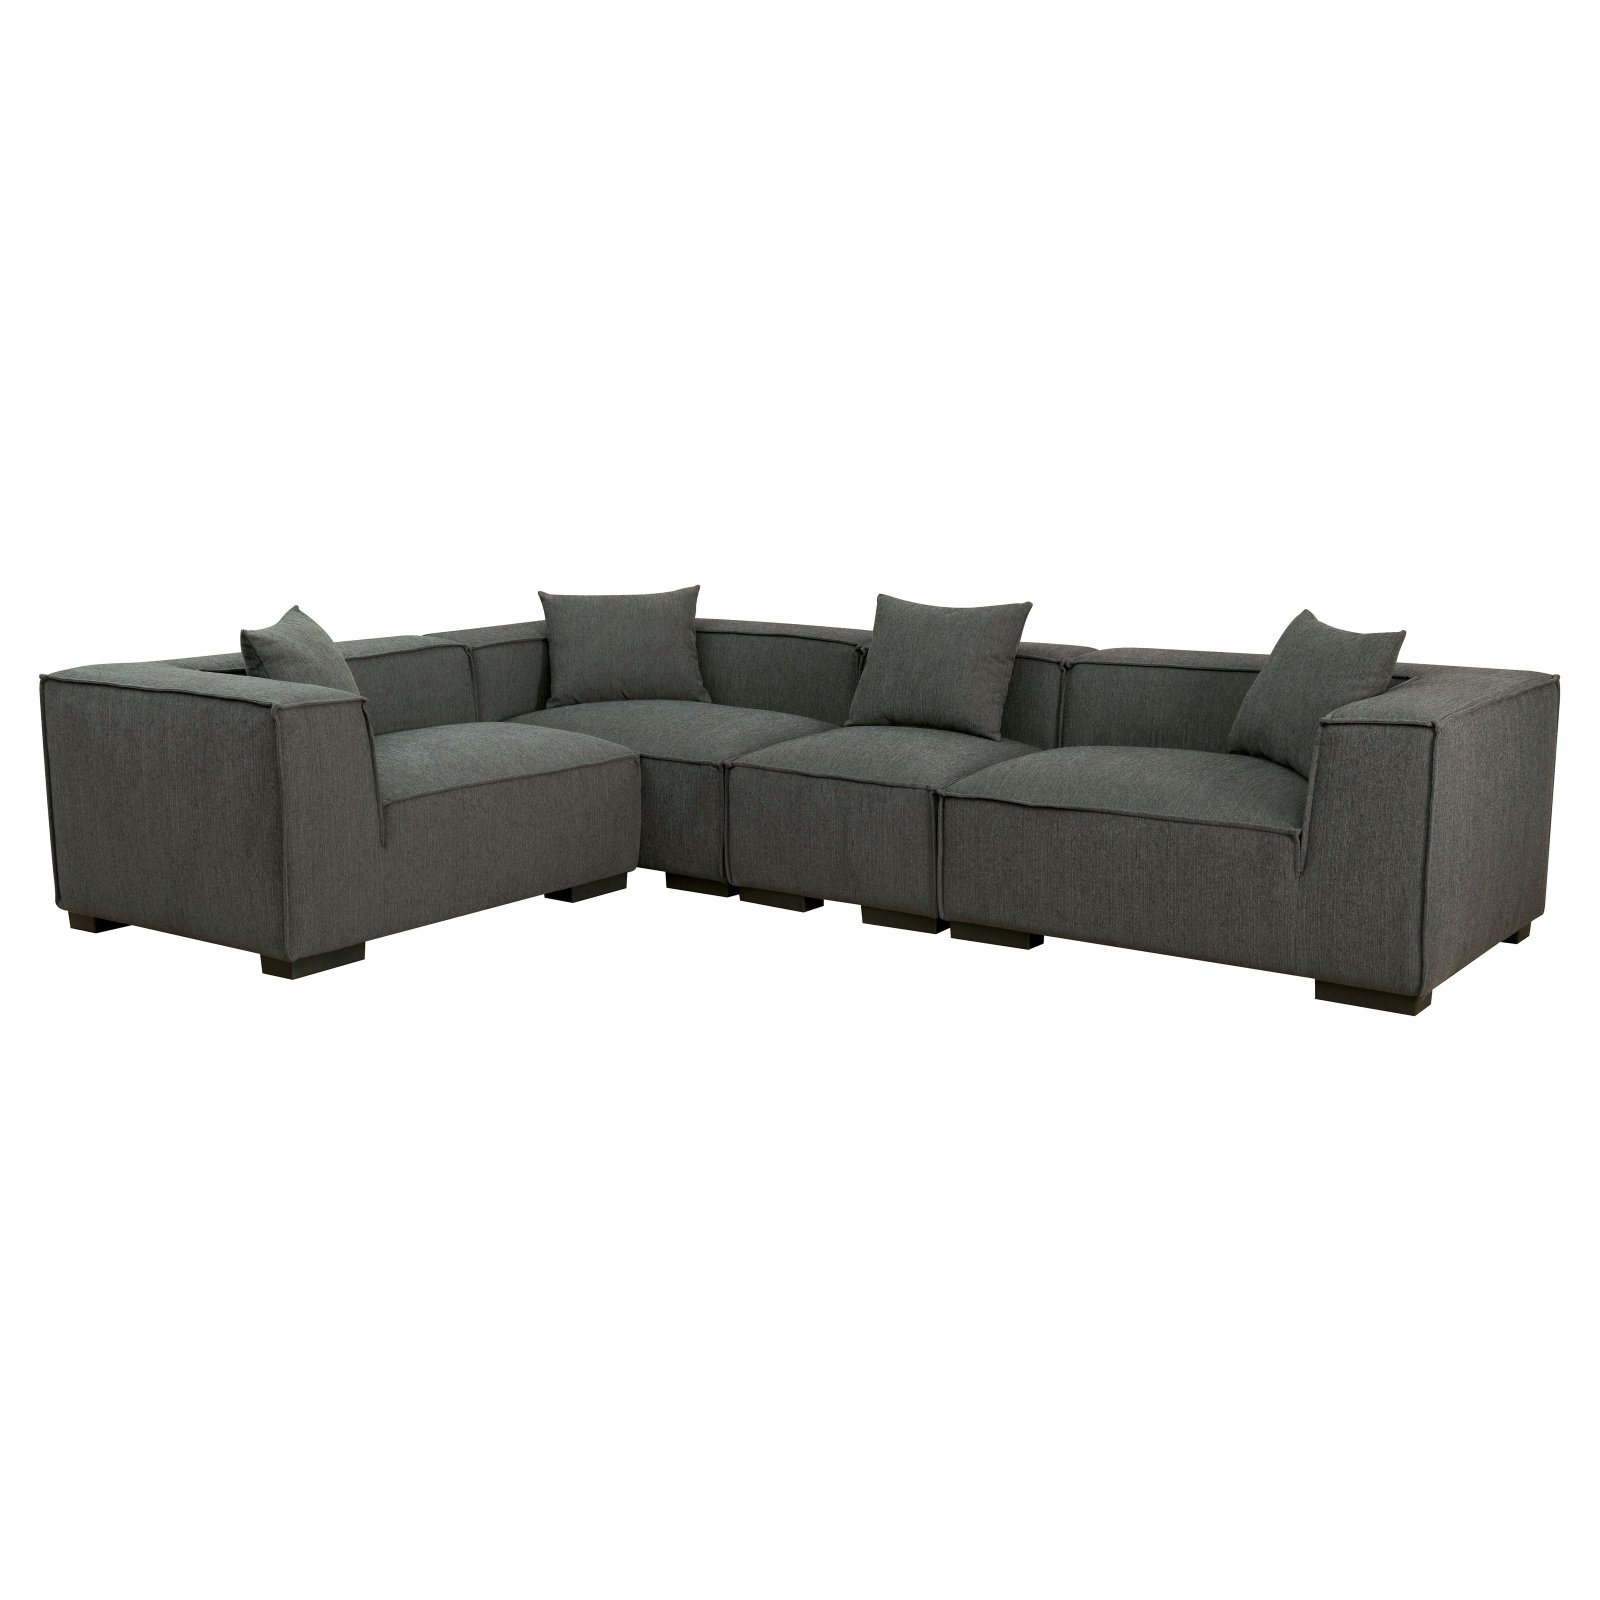 Furniture of America Boyett Sectional Sofa with Pillows